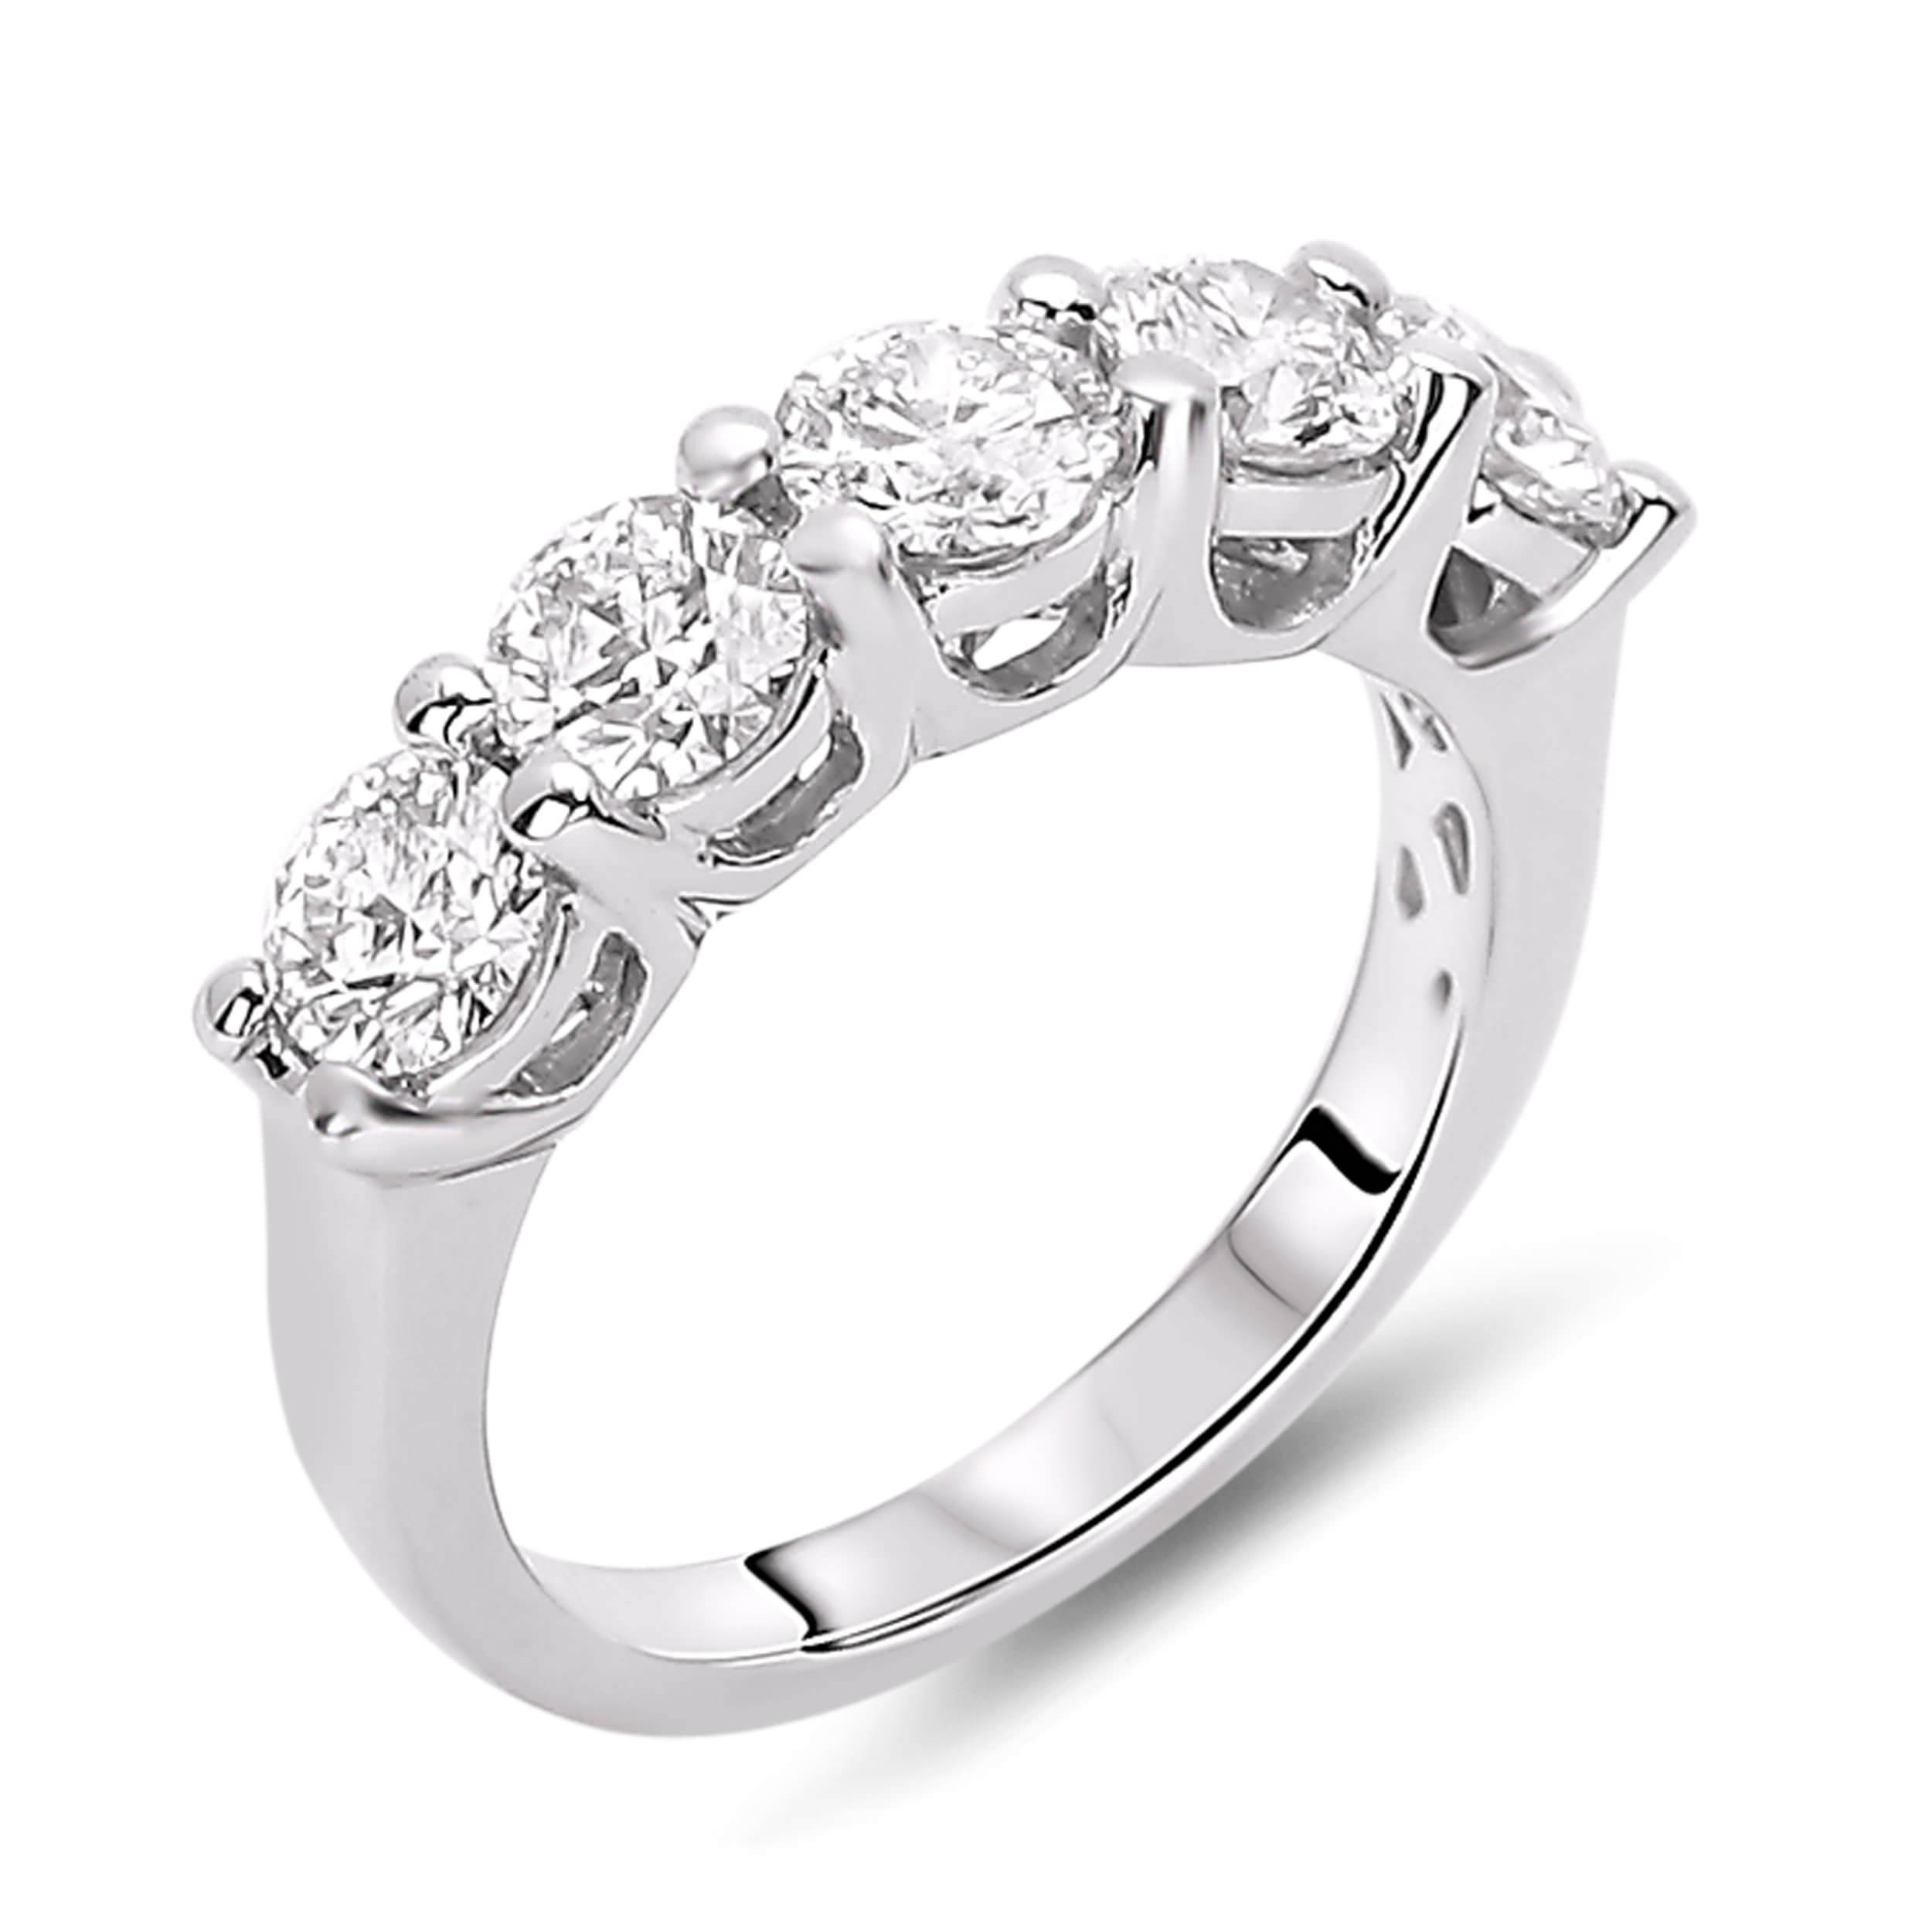 Wedding Rings : Art Deco Anniversary Band 3 Carat Solitaire With Regard To 2017 10 Year Diamond Anniversary Rings (Gallery 10 of 15)